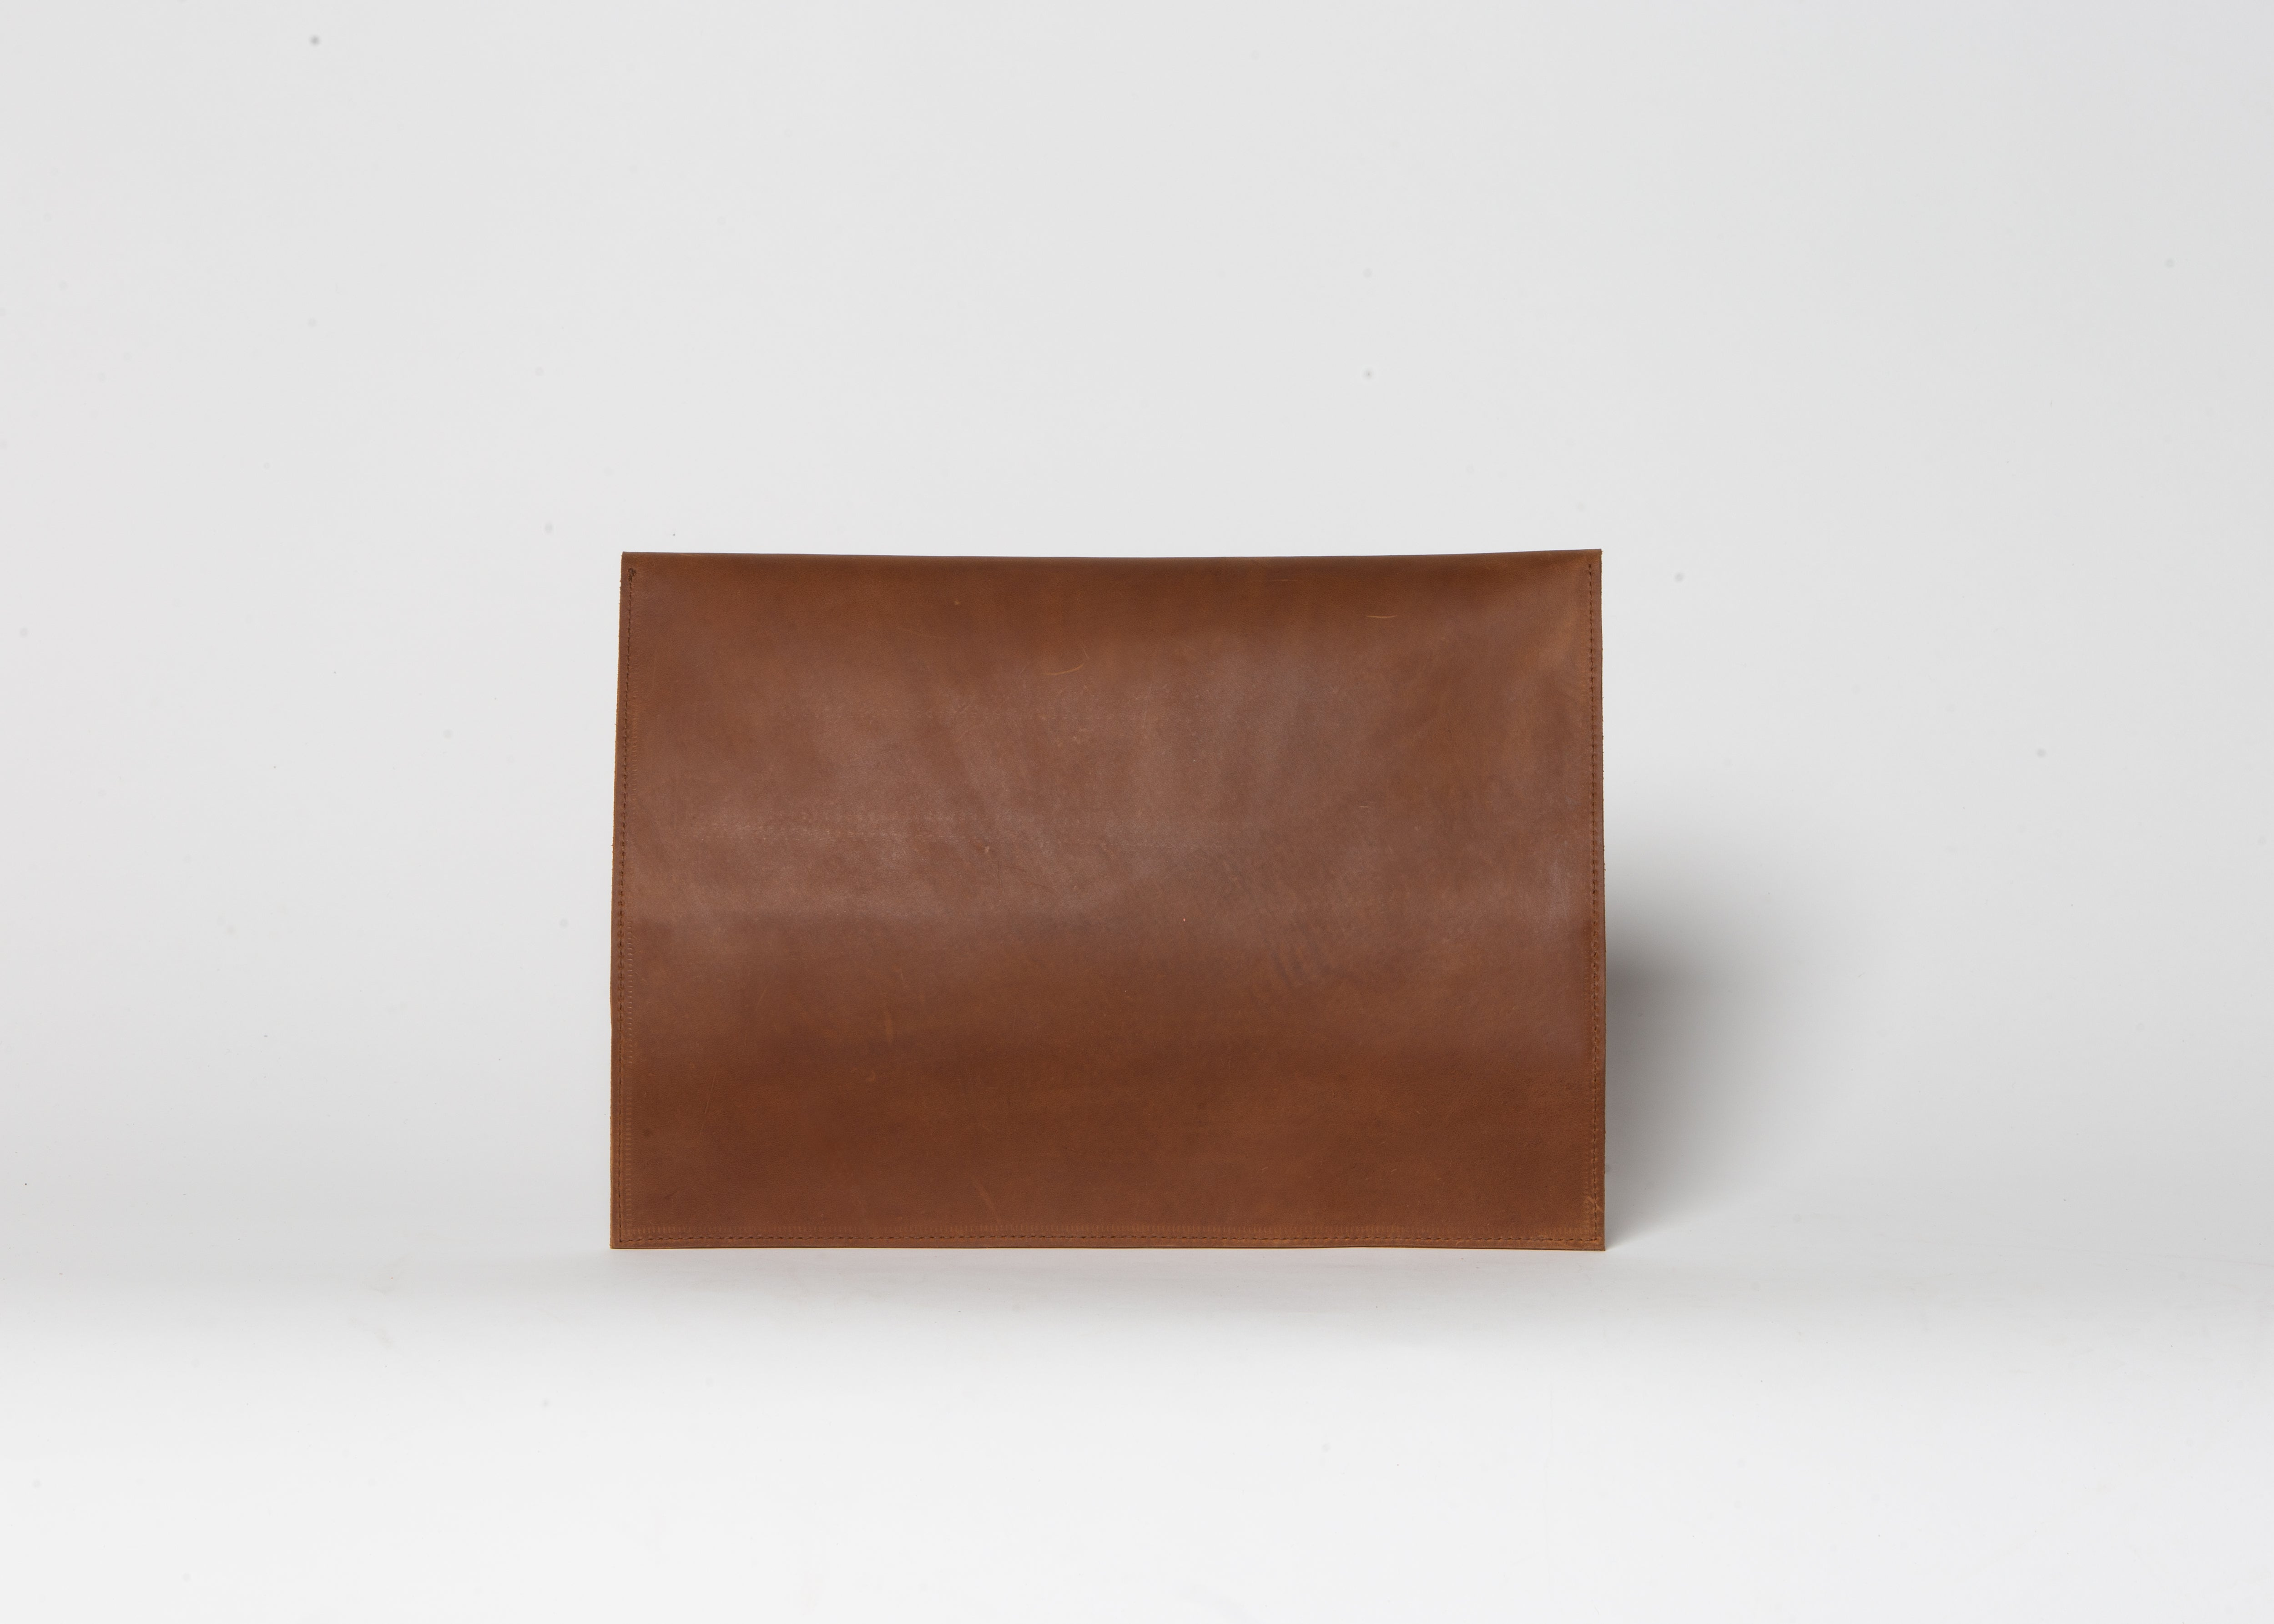 The Fana Hand Clutch